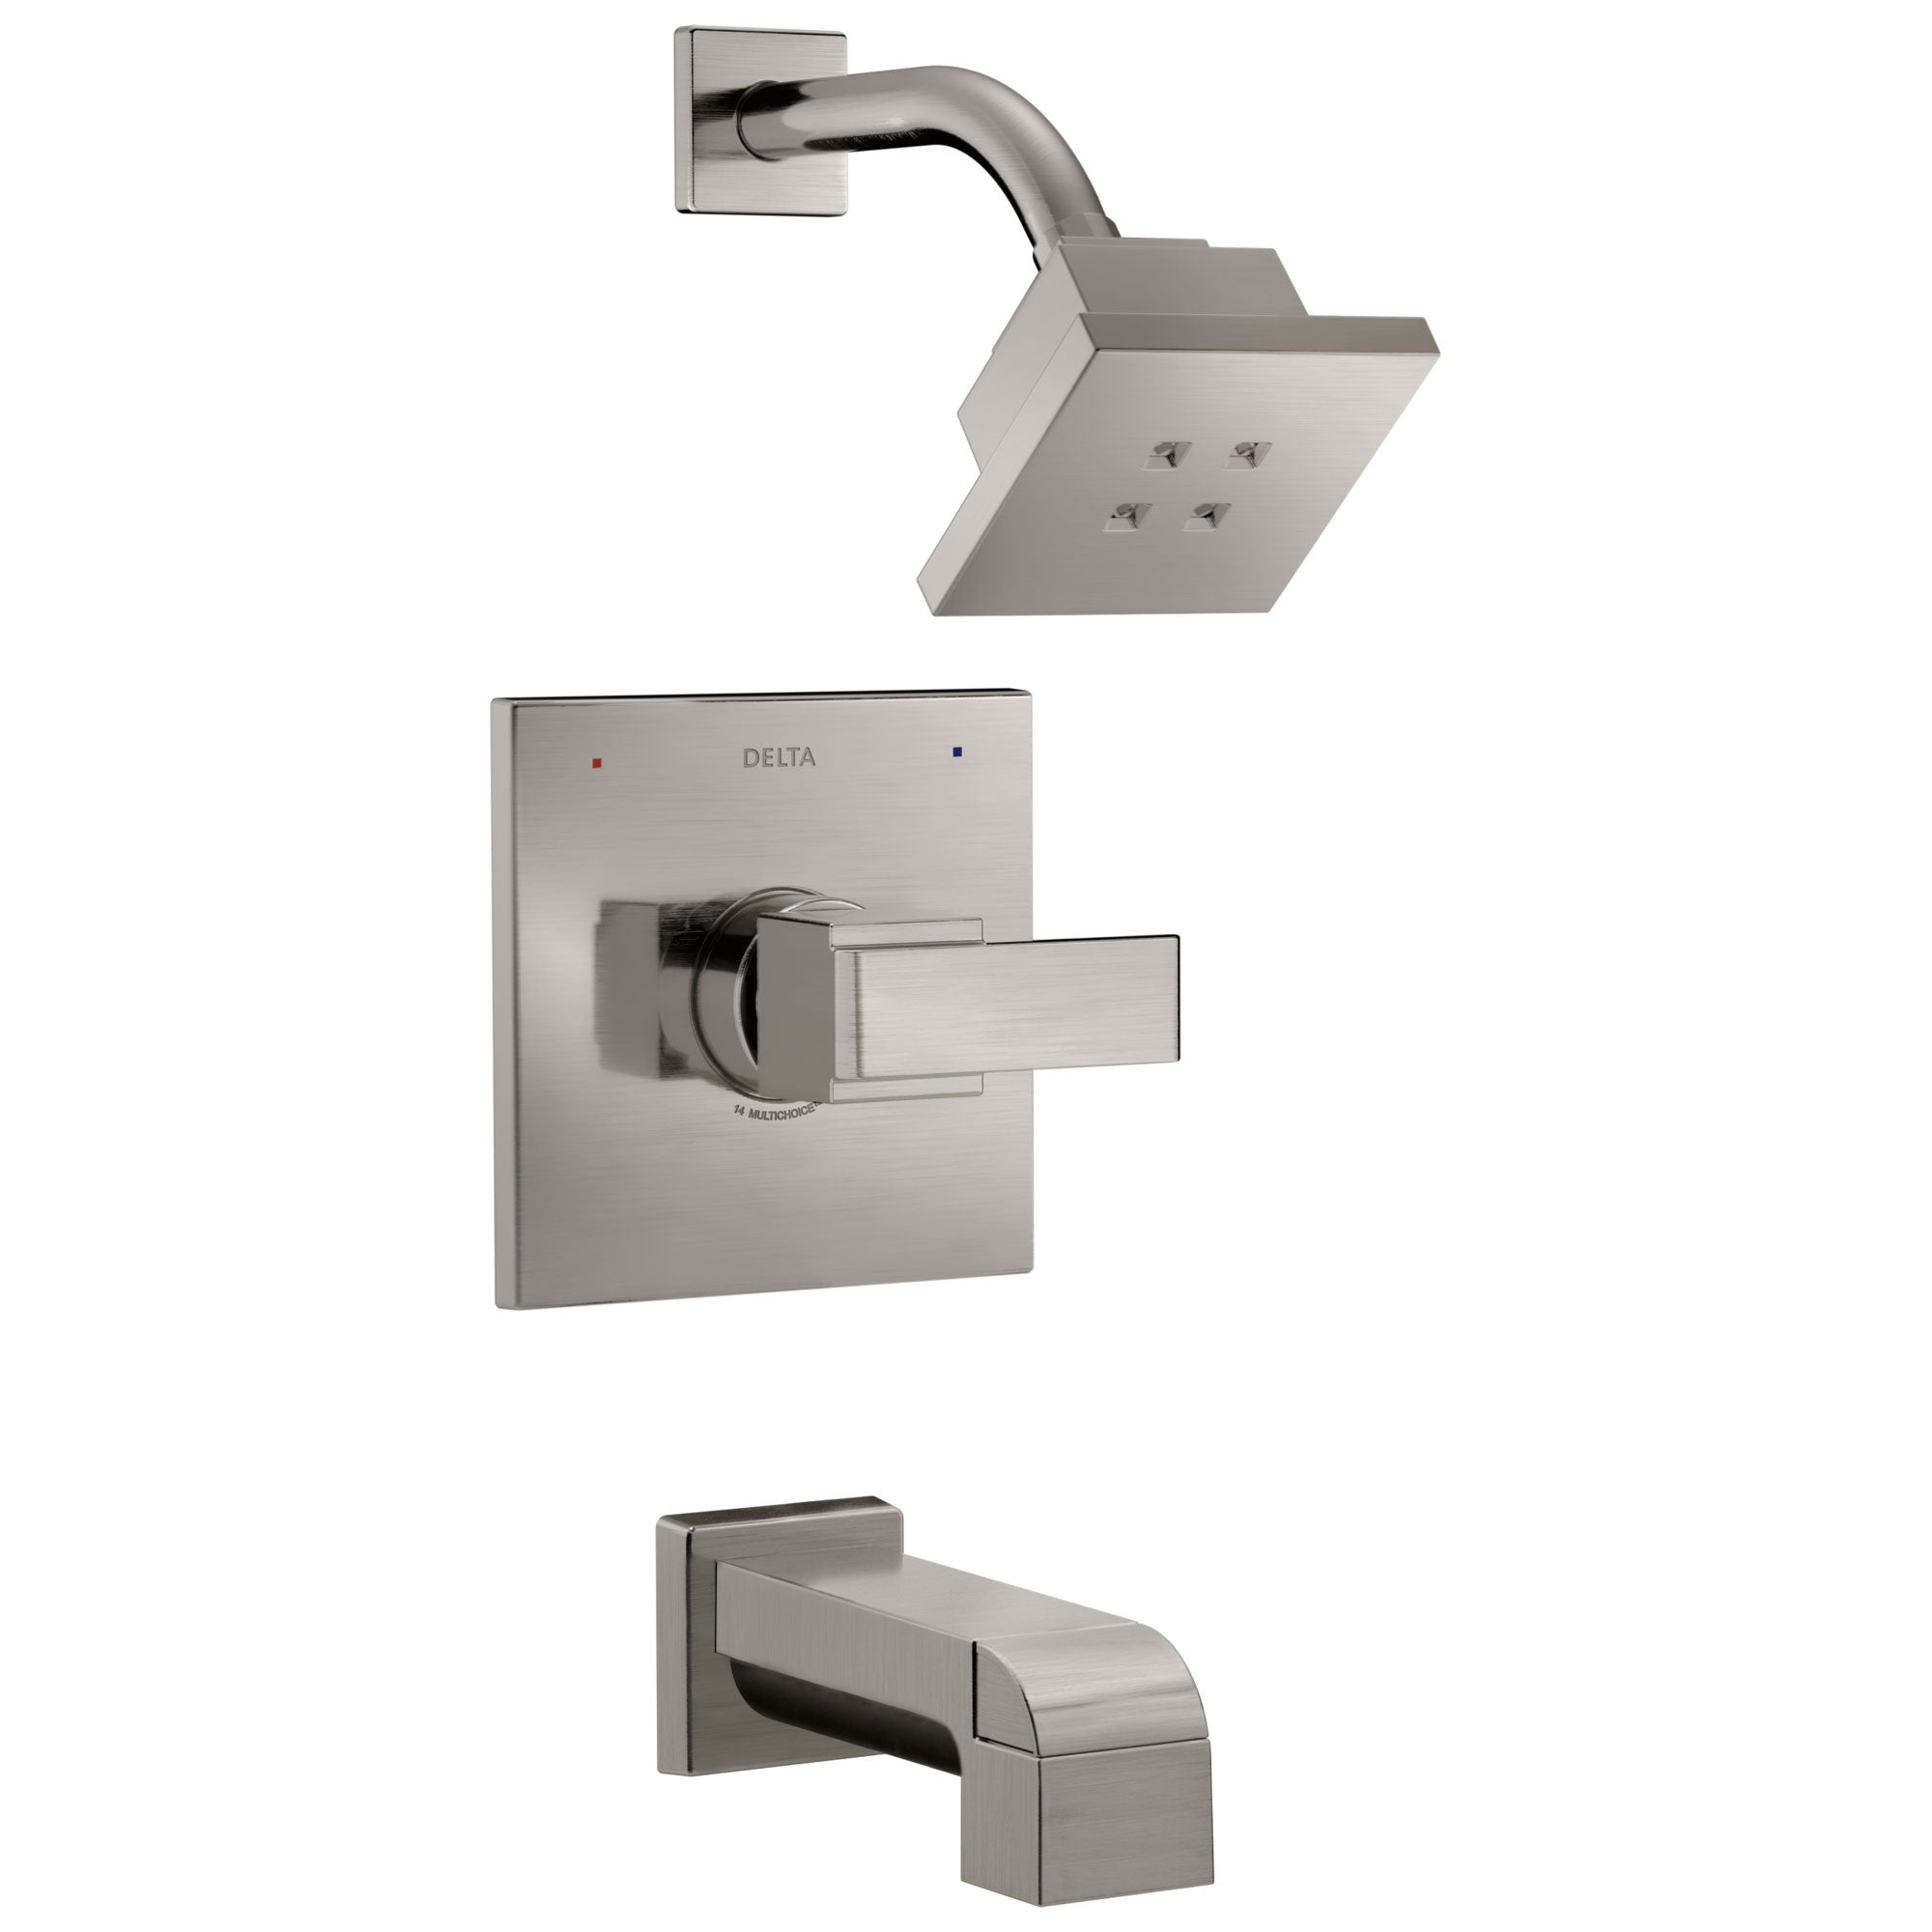 Delta Ara Collection Stainless Steel Finish Modern 1 Handle Monitor 14 Square Tub and Shower Faucet Combo Includes Valve without Stops D1992V